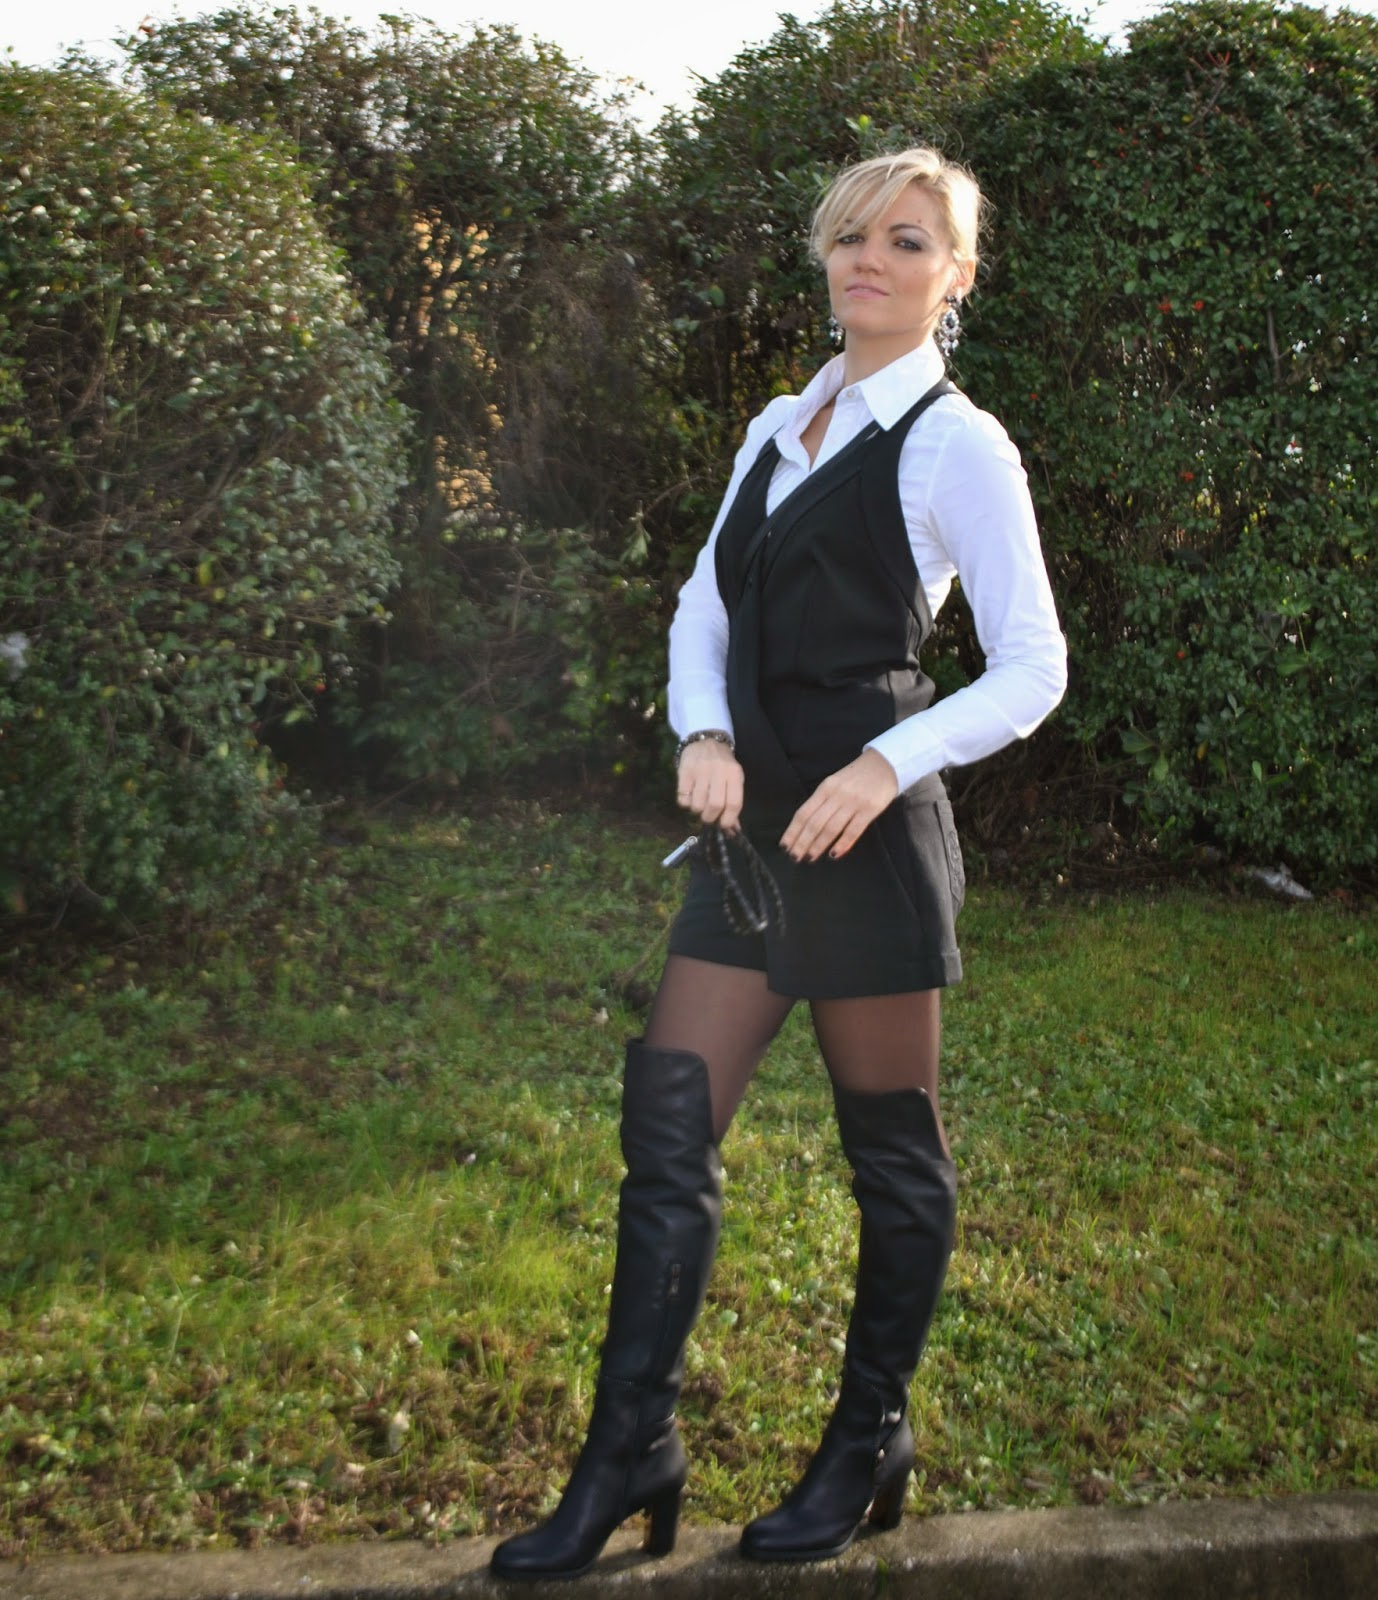 outfit salopette nera denny rose camicia bianca only outfit playsuit how to wear playsuit outfit dicembre 2014 outfit invernali   stivali al ginocchio  danilo di lea over knee boots danilo di lea how to wear over knee boots outfit over knee boots outfit bianco e nero outfit black and white abbinamento bianco e nero how to wear jumpsuit outfit jumpsuit abbinamenti jumpsuit abbinamenti salopette occhiali da sole carrera bracciali rosateresa collezione millelire rosa teresa outfit dicembre 2014 outfit per le feste christmas outfit cosa indossare a natale outfit easy chic outfit comfy chic borsa mini selma michael kors borsa mini selma nera e grigia michael kors fashion blogger italiane fashion blog italiani italian fashion bloggers italian girls mariafelicia magno fashion blogger colorblock by felym fashion blogger bionde